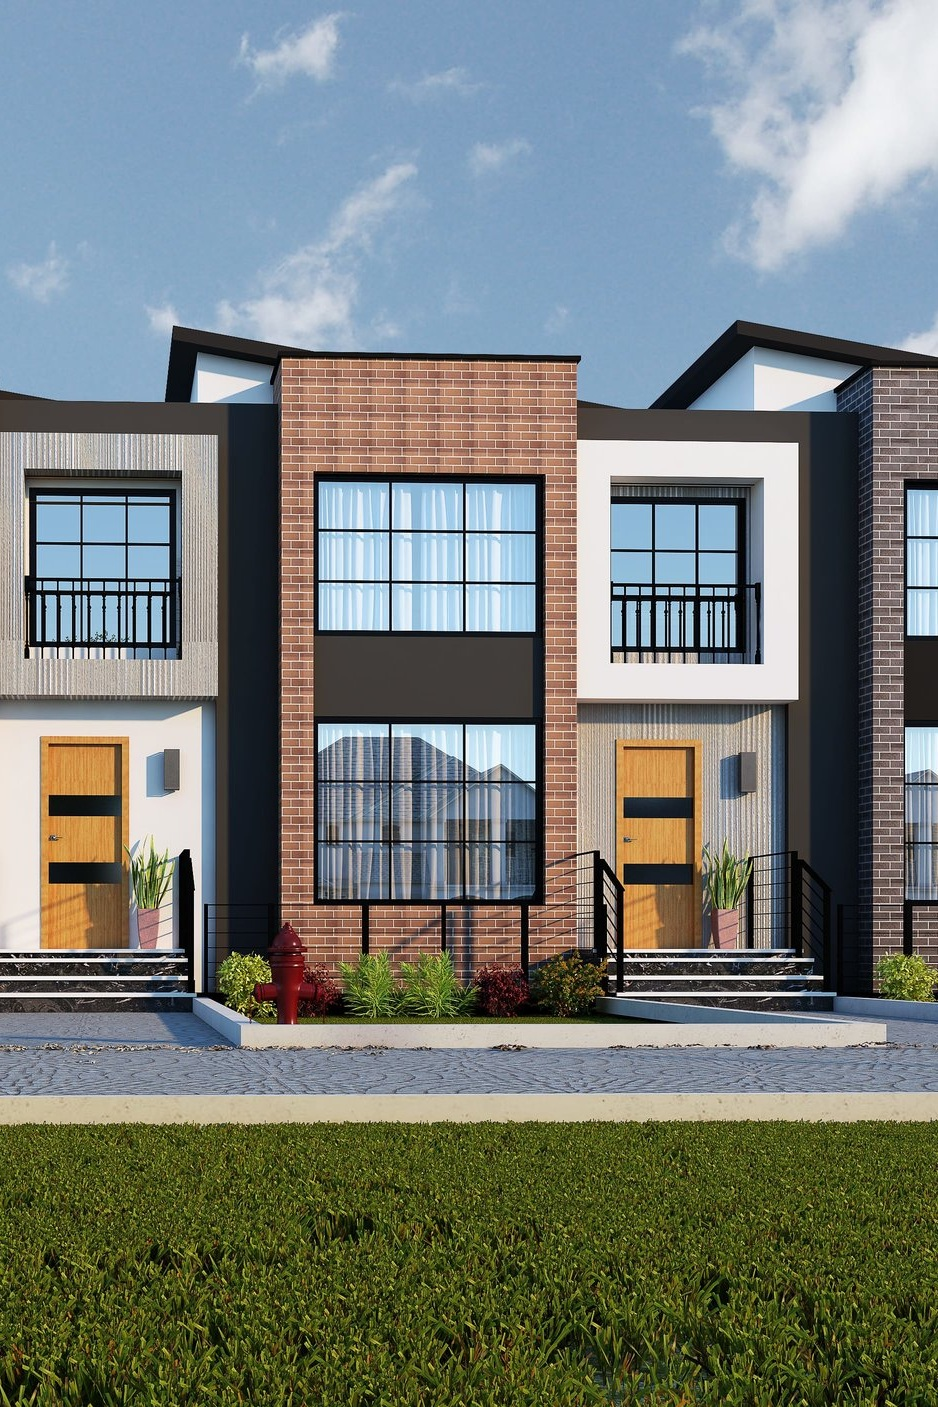 AVAILABLE -Tarmac III - 1670 sq.ft. w/basement suite option, $525,000 - Possession: December 2019- Units are facing the Public Pathway- Back entrance to an optional 2 bedroom basement suite,- Modern-contemporary design- 10' ceilings- Double garage 22' deep to fit your SUV/Pickup truck- Quartz/granite counter tops- Upgraded kitchen with big island- Loft on 2nd floor- Geo-thermal heating and cooling, HRV, Smart room thermostat**Price includes lot, house, landscaping, deck, and appliances credit, and GST, comes with a unfinished basement